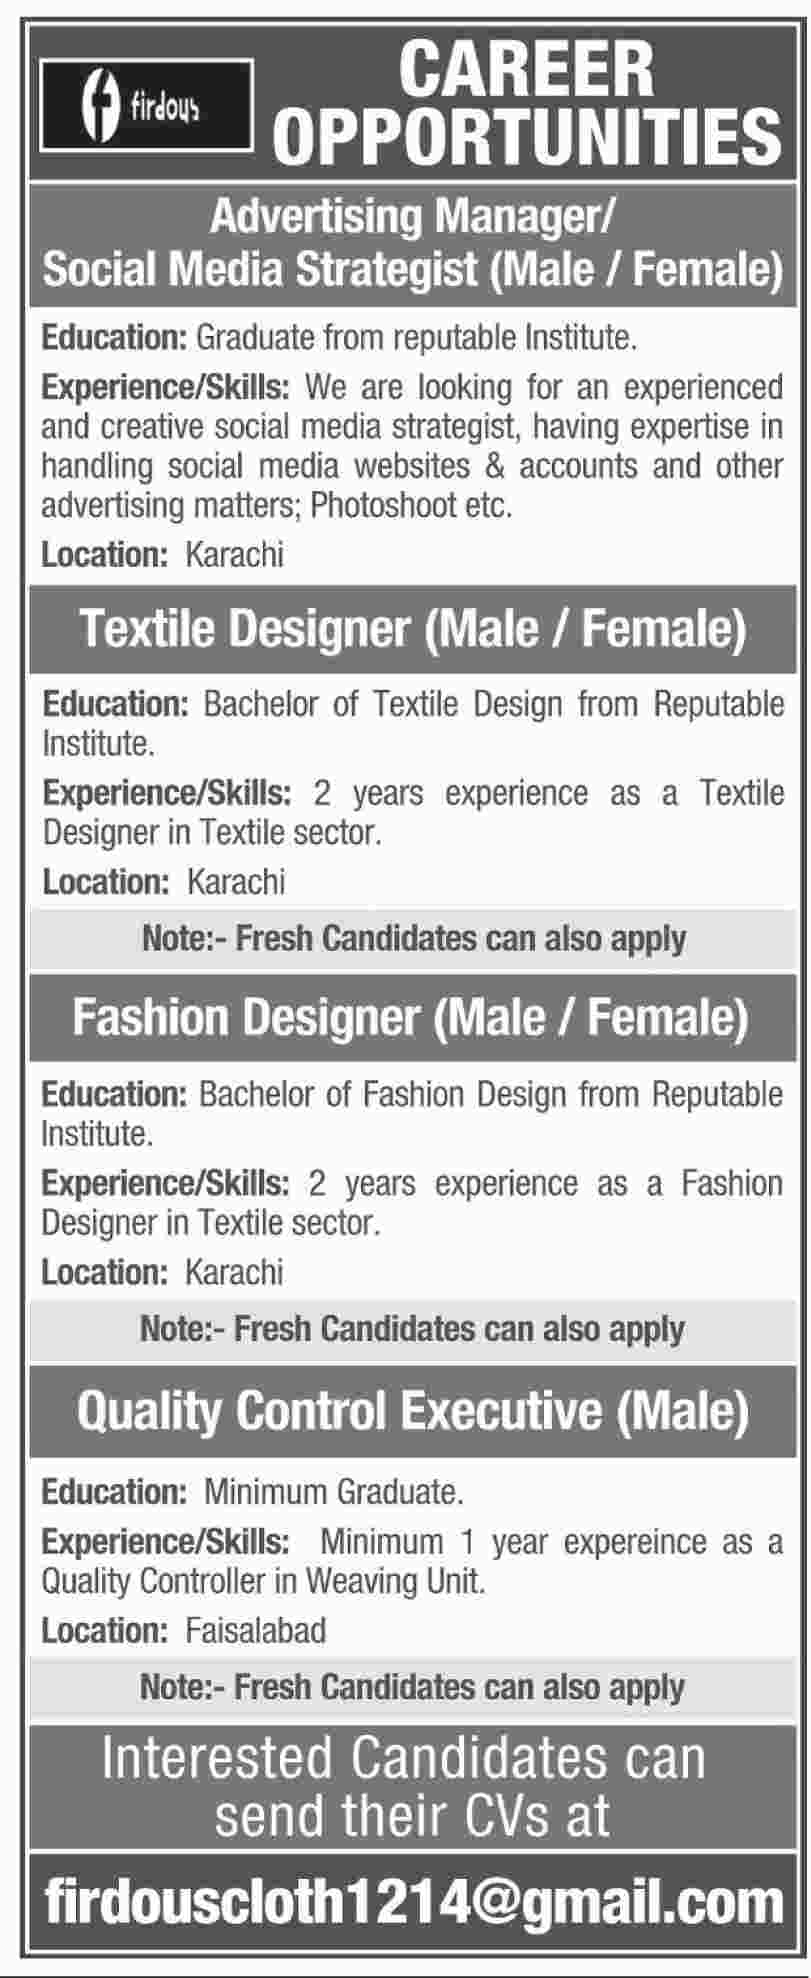 Firdous Textile Jobs 2019 For Fashion Designer Textile Designer And Social Media Advertiser Manager On 17 December 2018 Paperpk Jobs